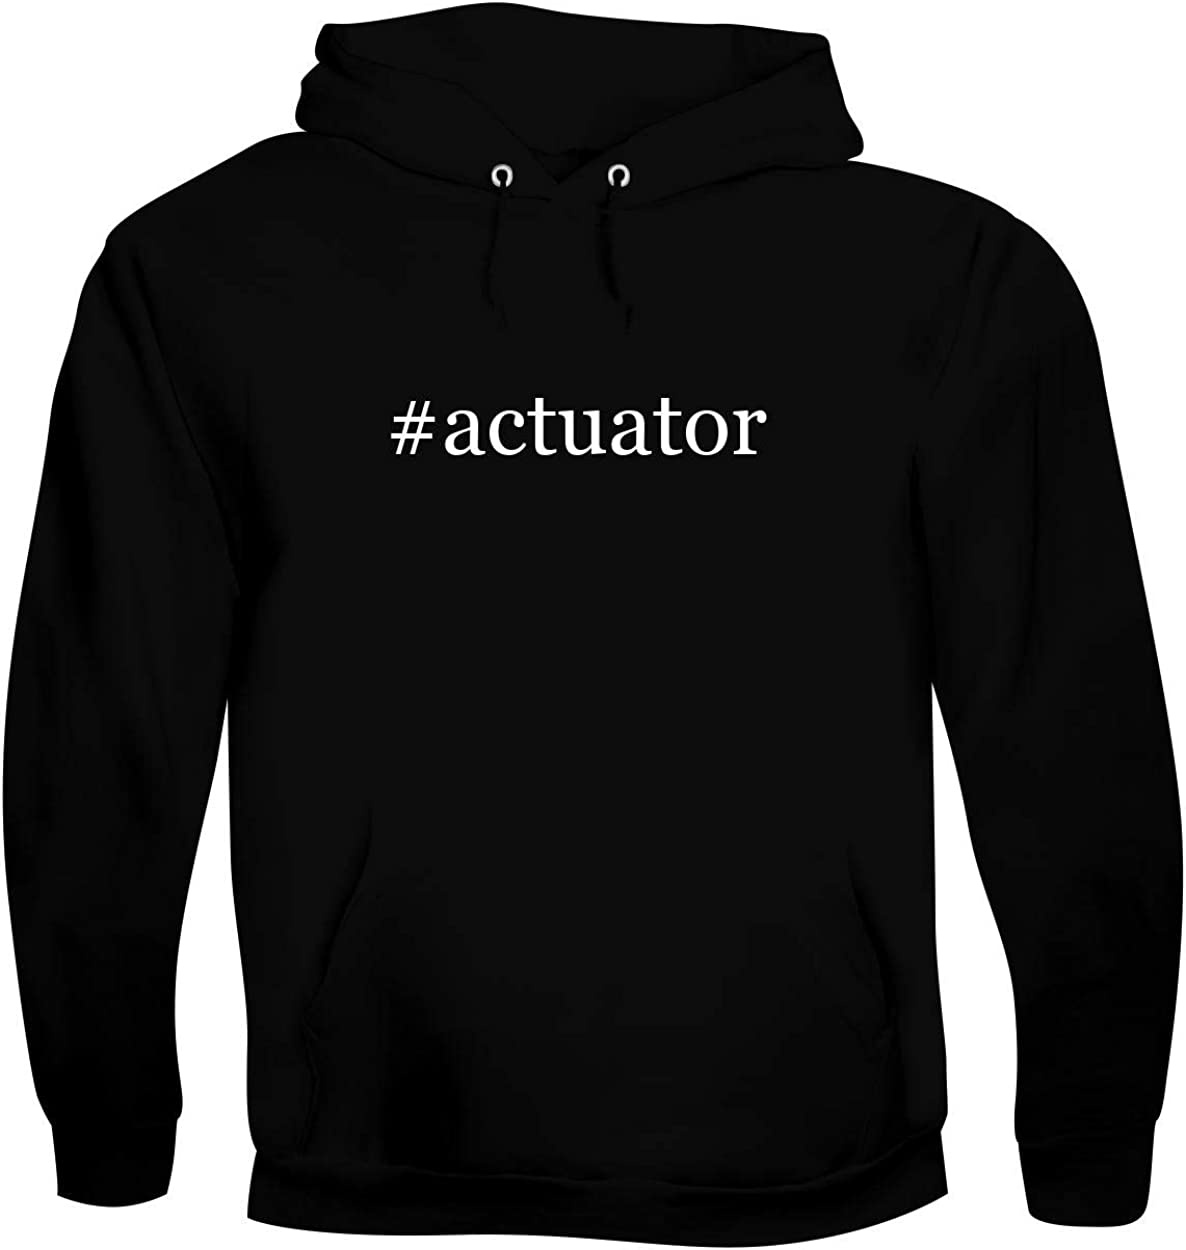 #actuator - Men's Hashtag Soft & Comfortable Hoodie Sweatshirt Pullover 51g5yyb0oVL